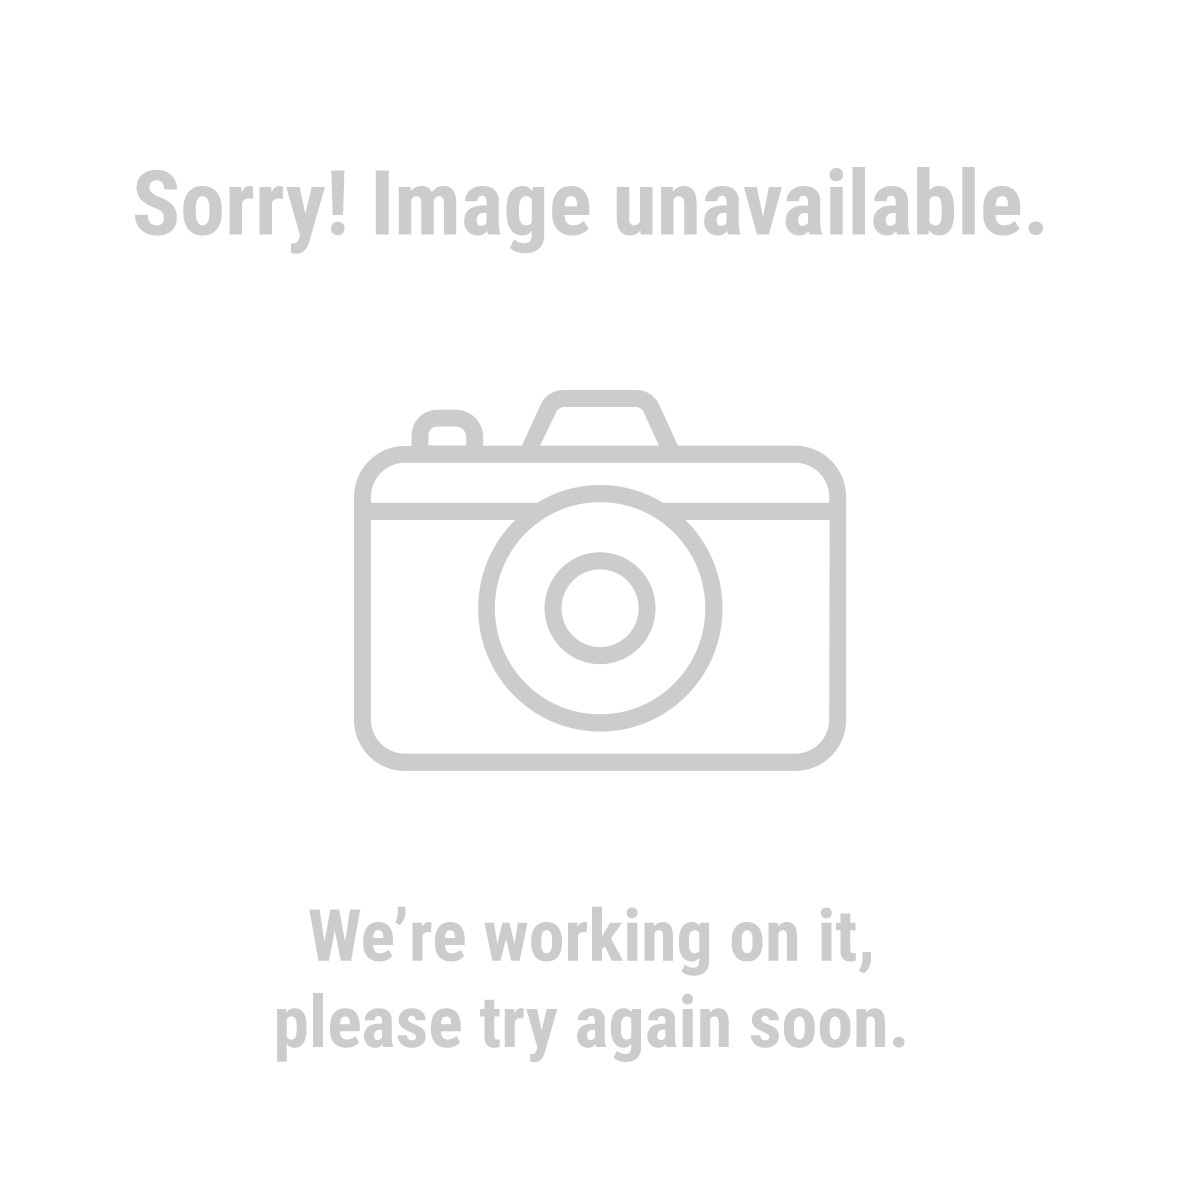 6 Bike Rack Storage Stand Garage Wall Holder Bicycle